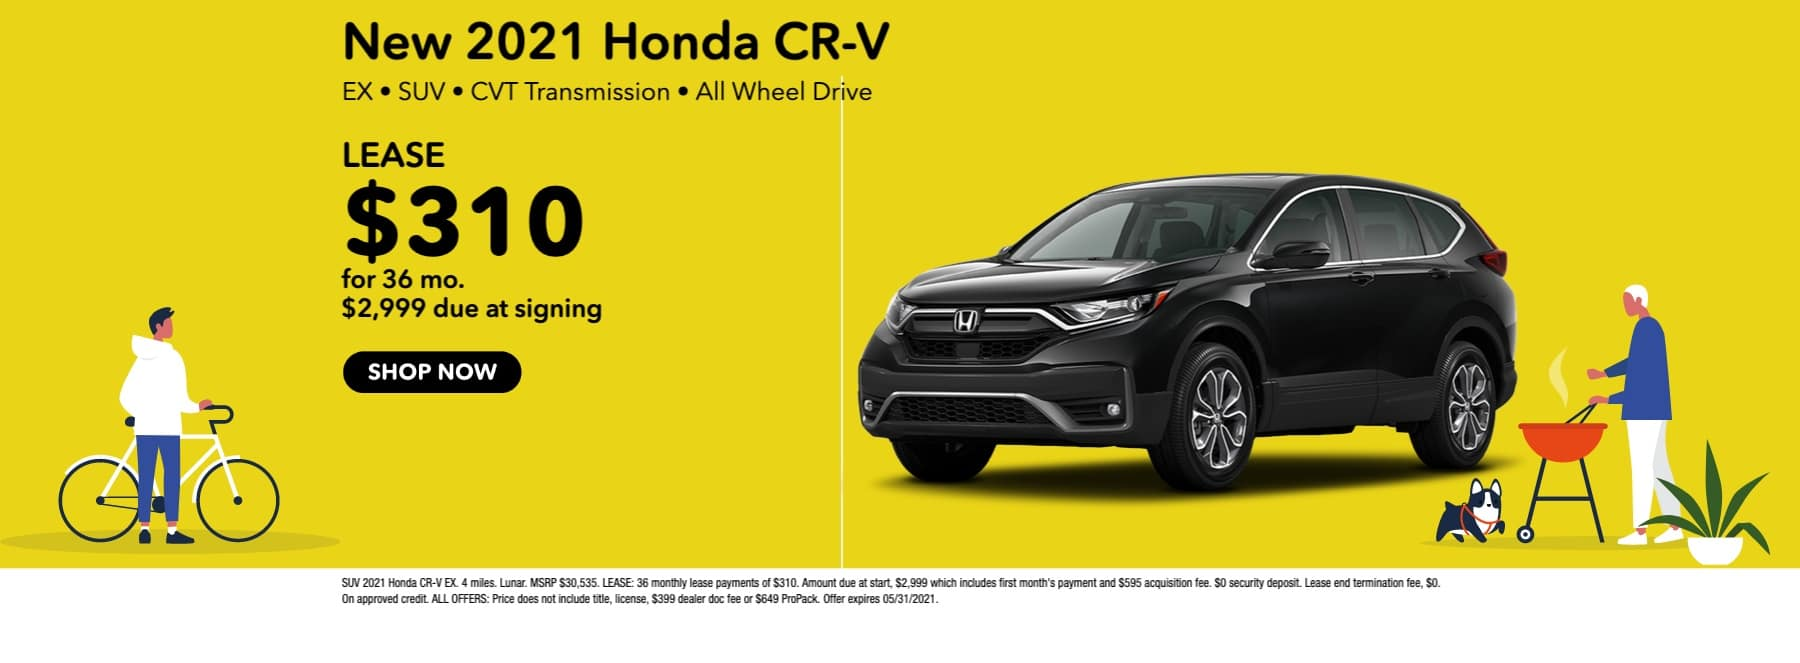 New 2021 Honda CR-V EX